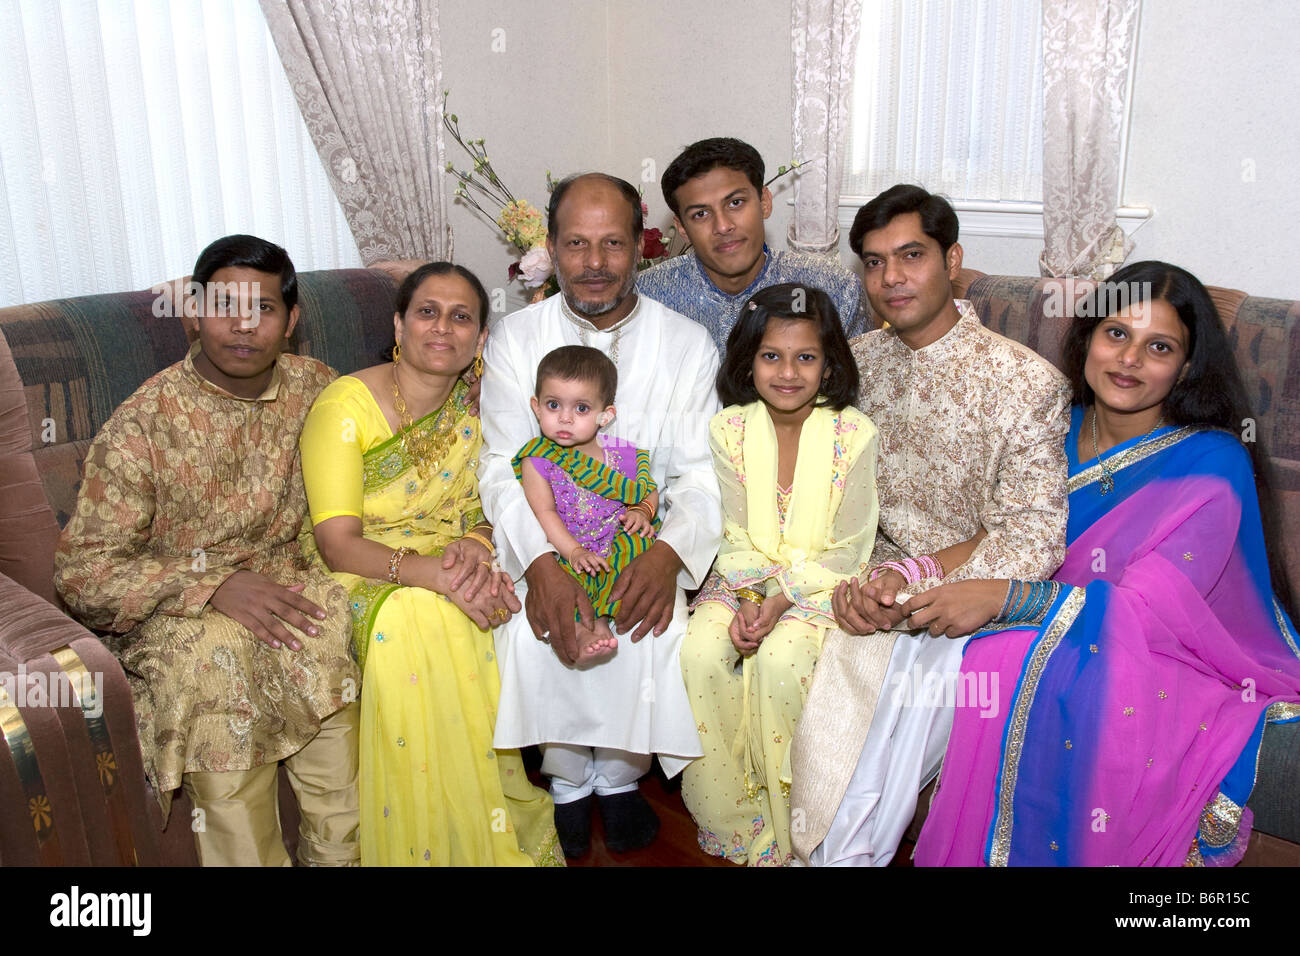 Bangladeshi American family at home in Brooklyn New York for the Muslim holiday of Eid, marking the end of Ramadan - Stock Image